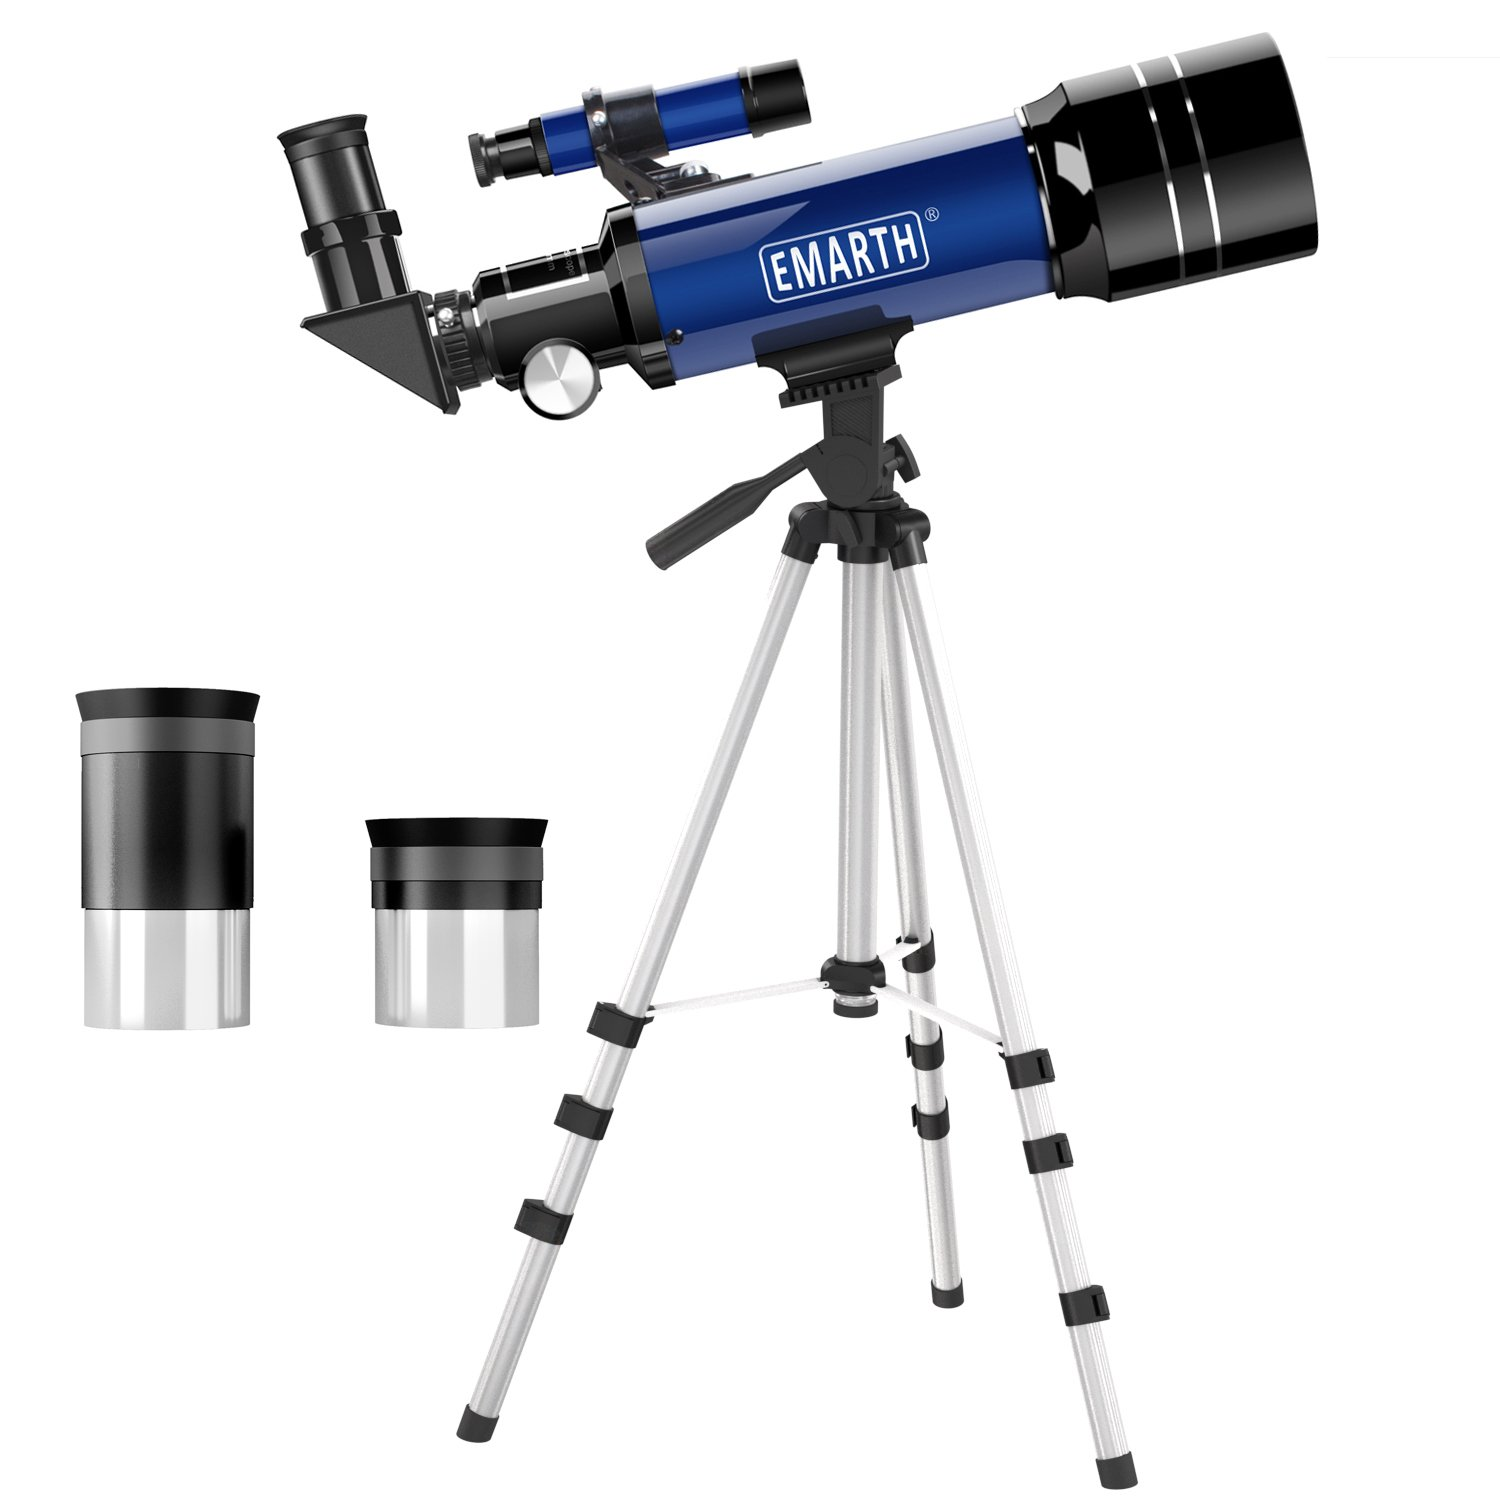 70mm Astronomical Refracter Telescope (for Beginners) with Tripod & Finder Scope